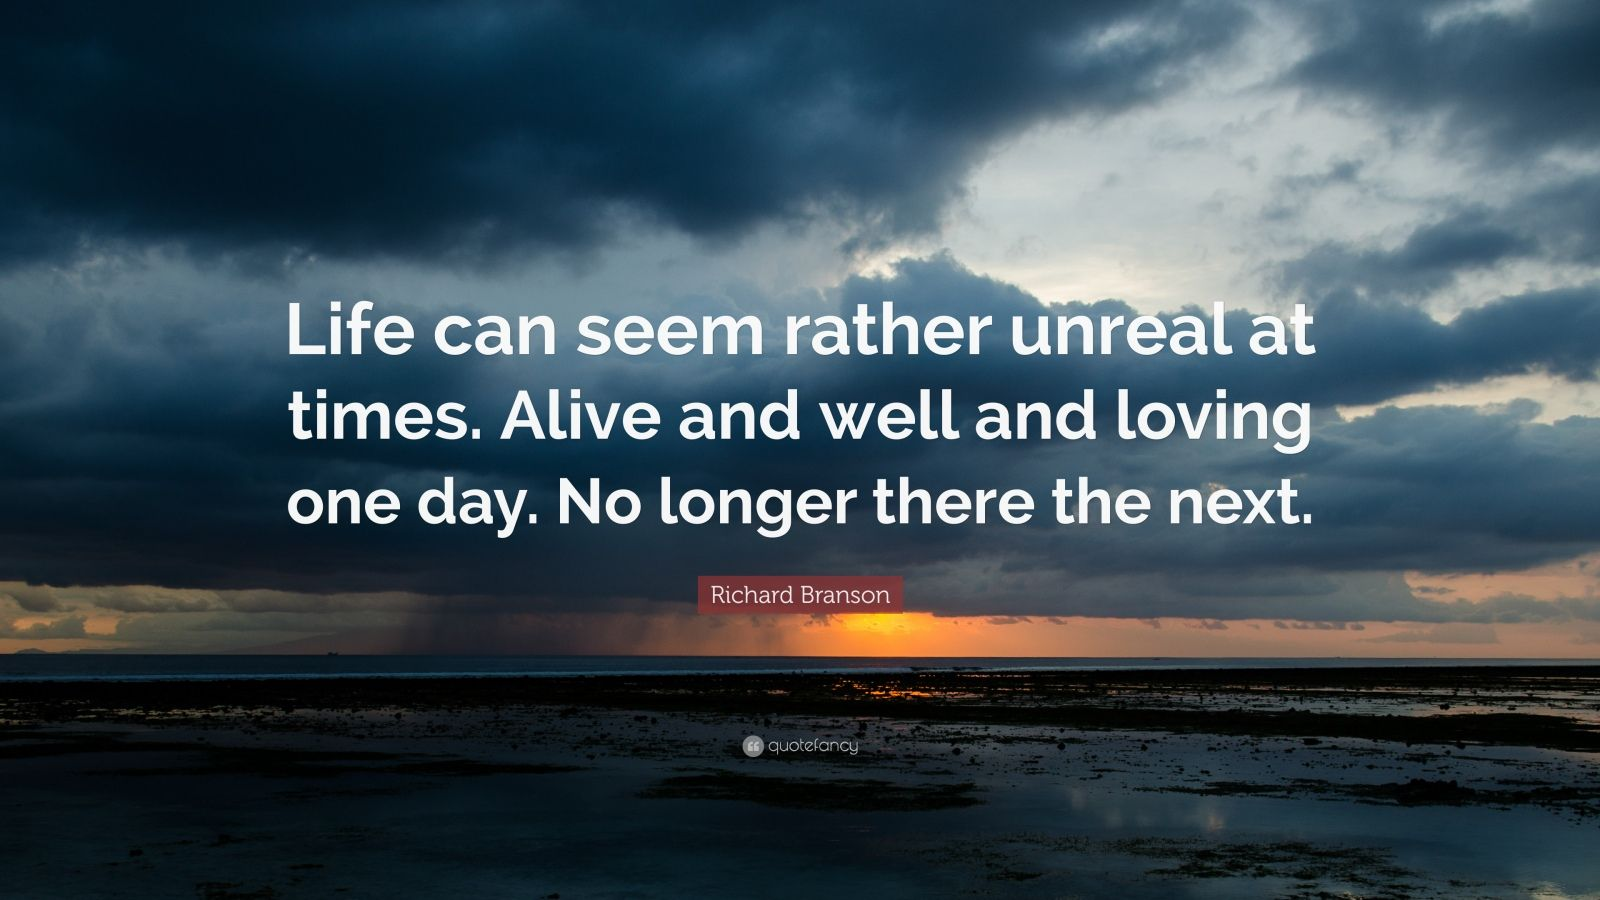 """Richard Branson Quote: """"Life can seem rather unreal at times. Alive and well and loving one day. No longer there the next."""""""